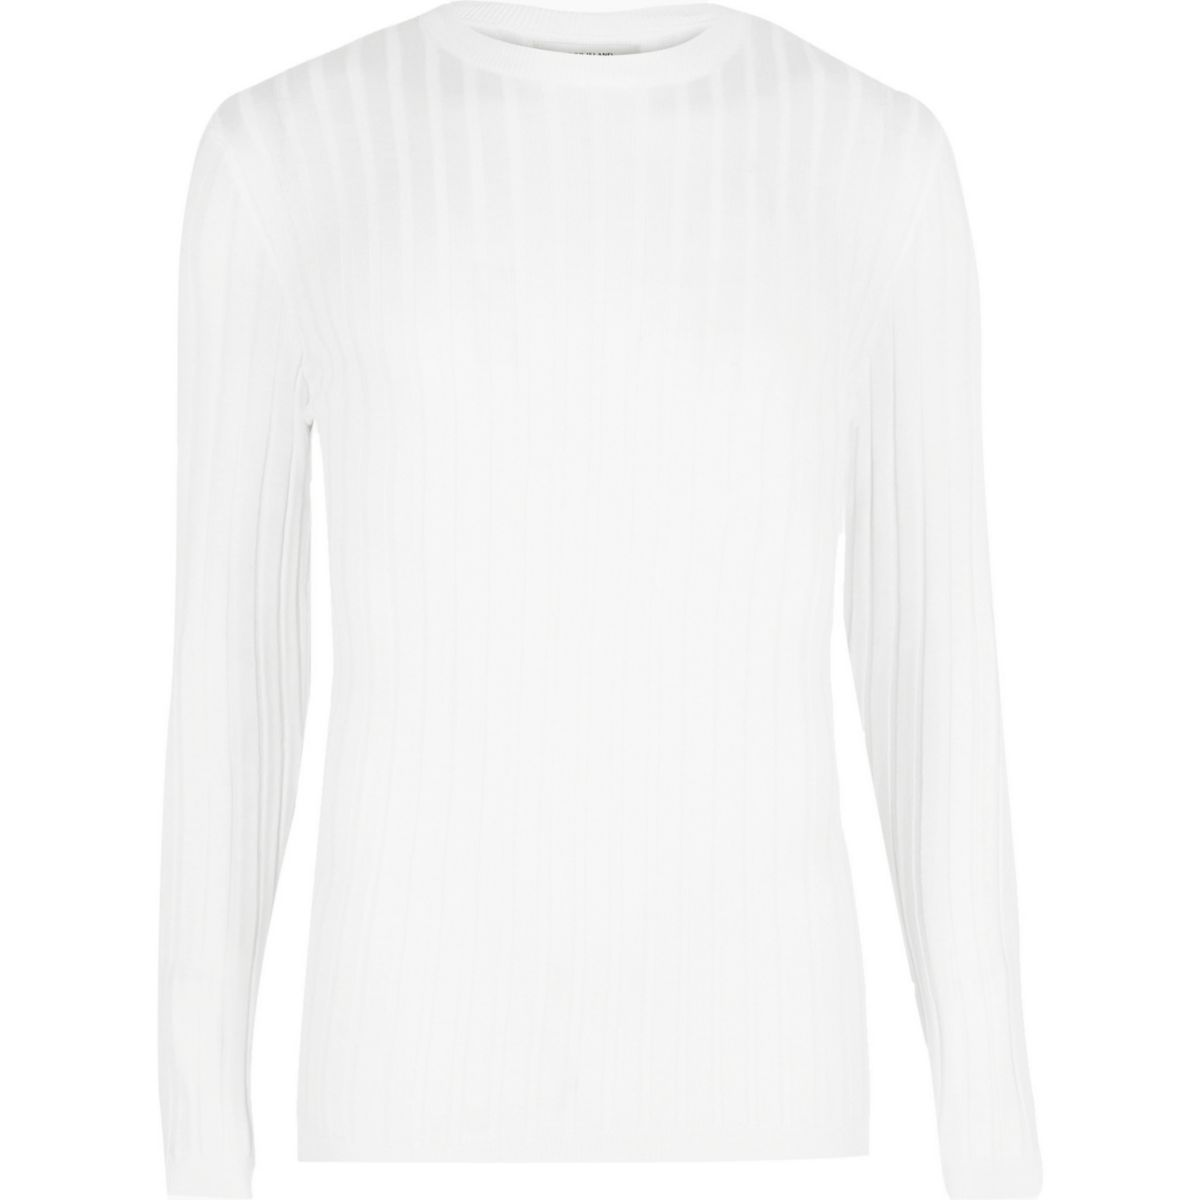 Big and Tall white ribbed crew neck sweater